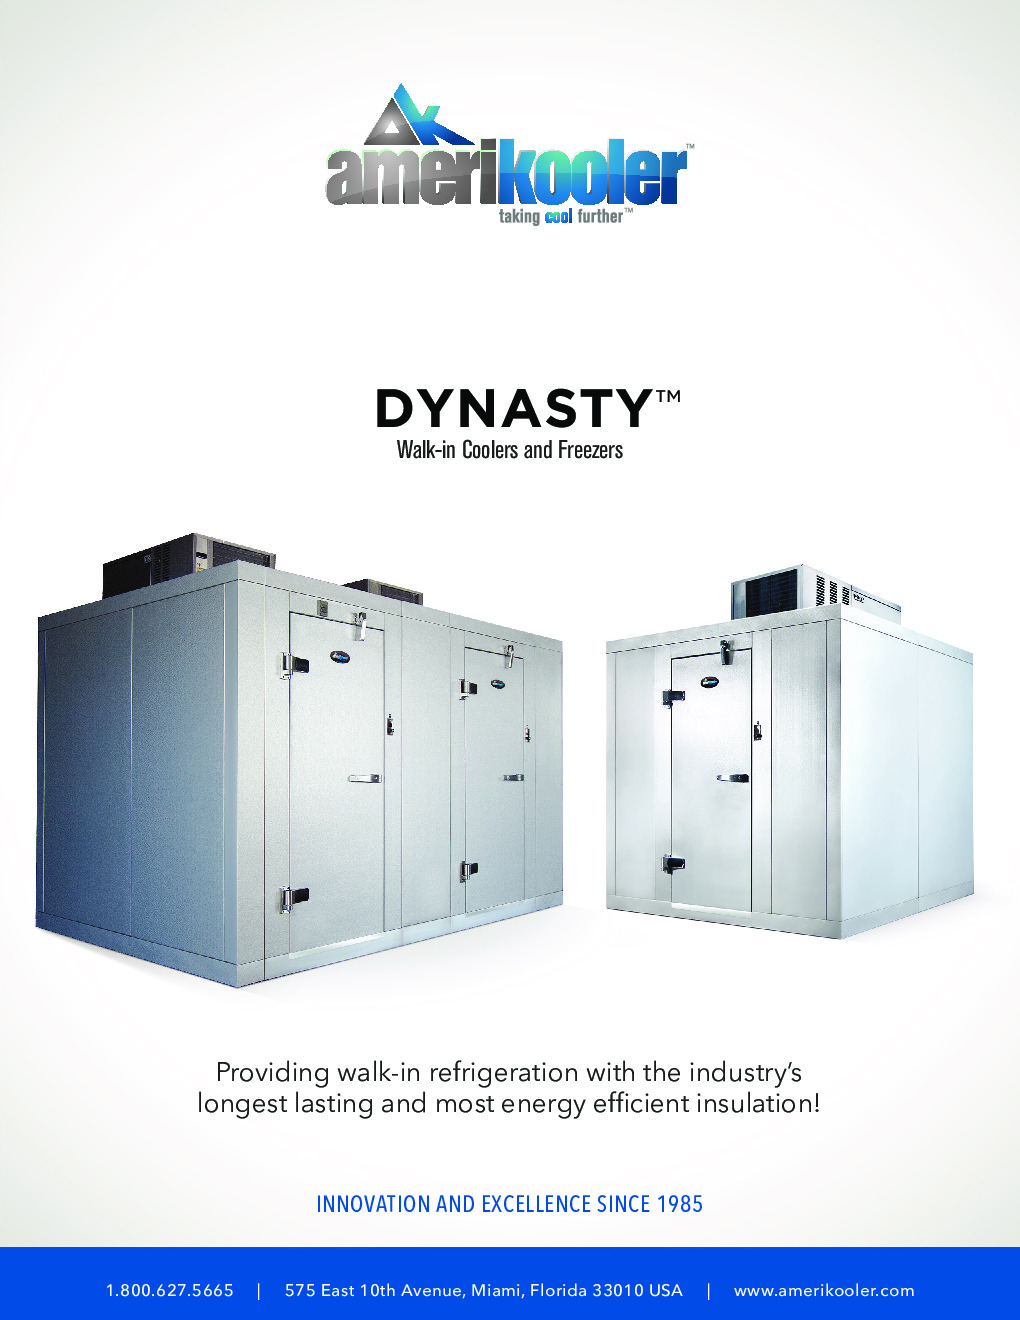 AmeriKooler DW091577F-7/8 Indoor 9' X 15' Walk-In, 8' L Cooler with Floor and 7' L Freezer, Box Only